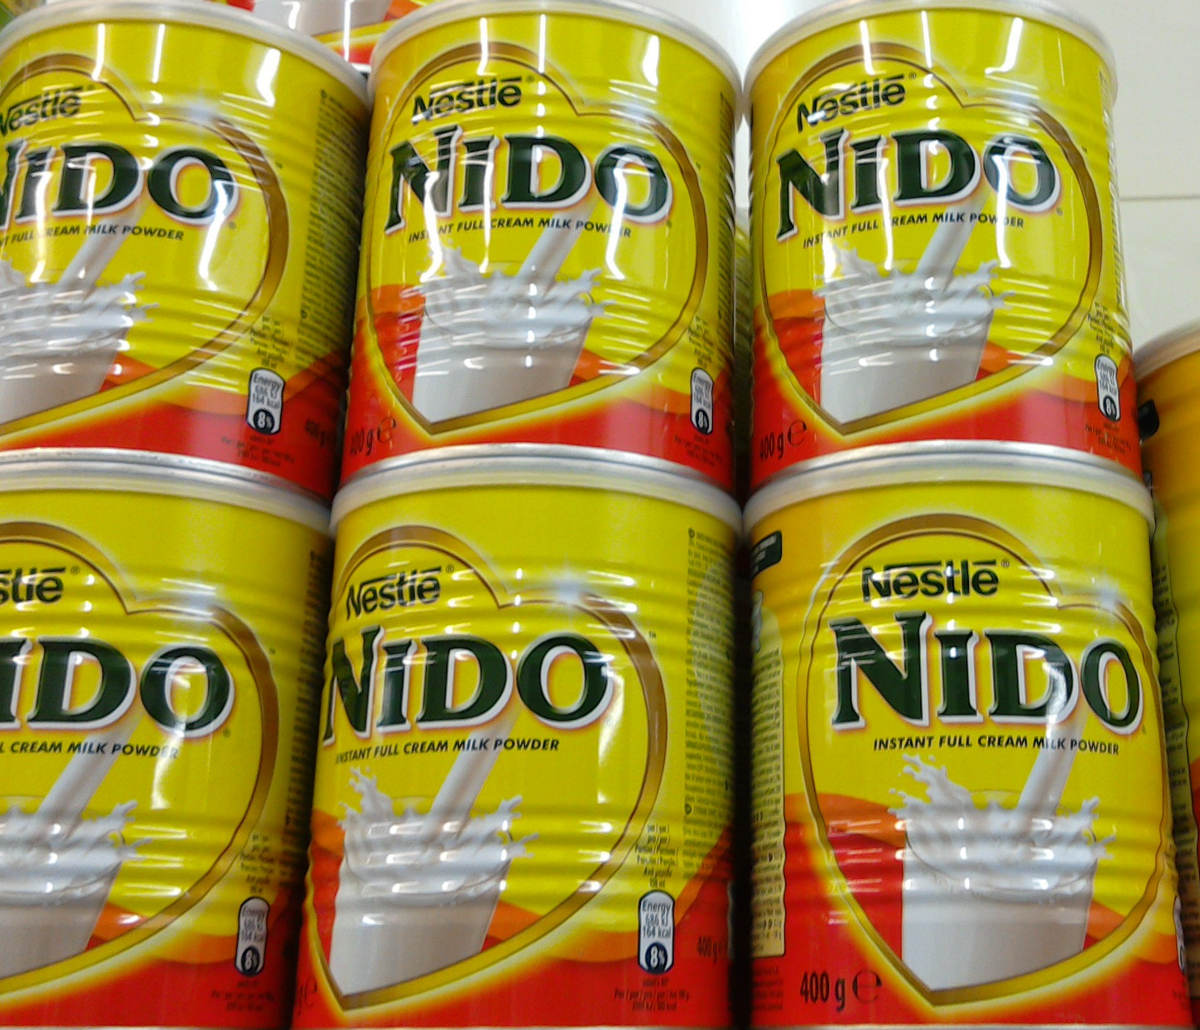 Red Cap Nido Milk from Holland